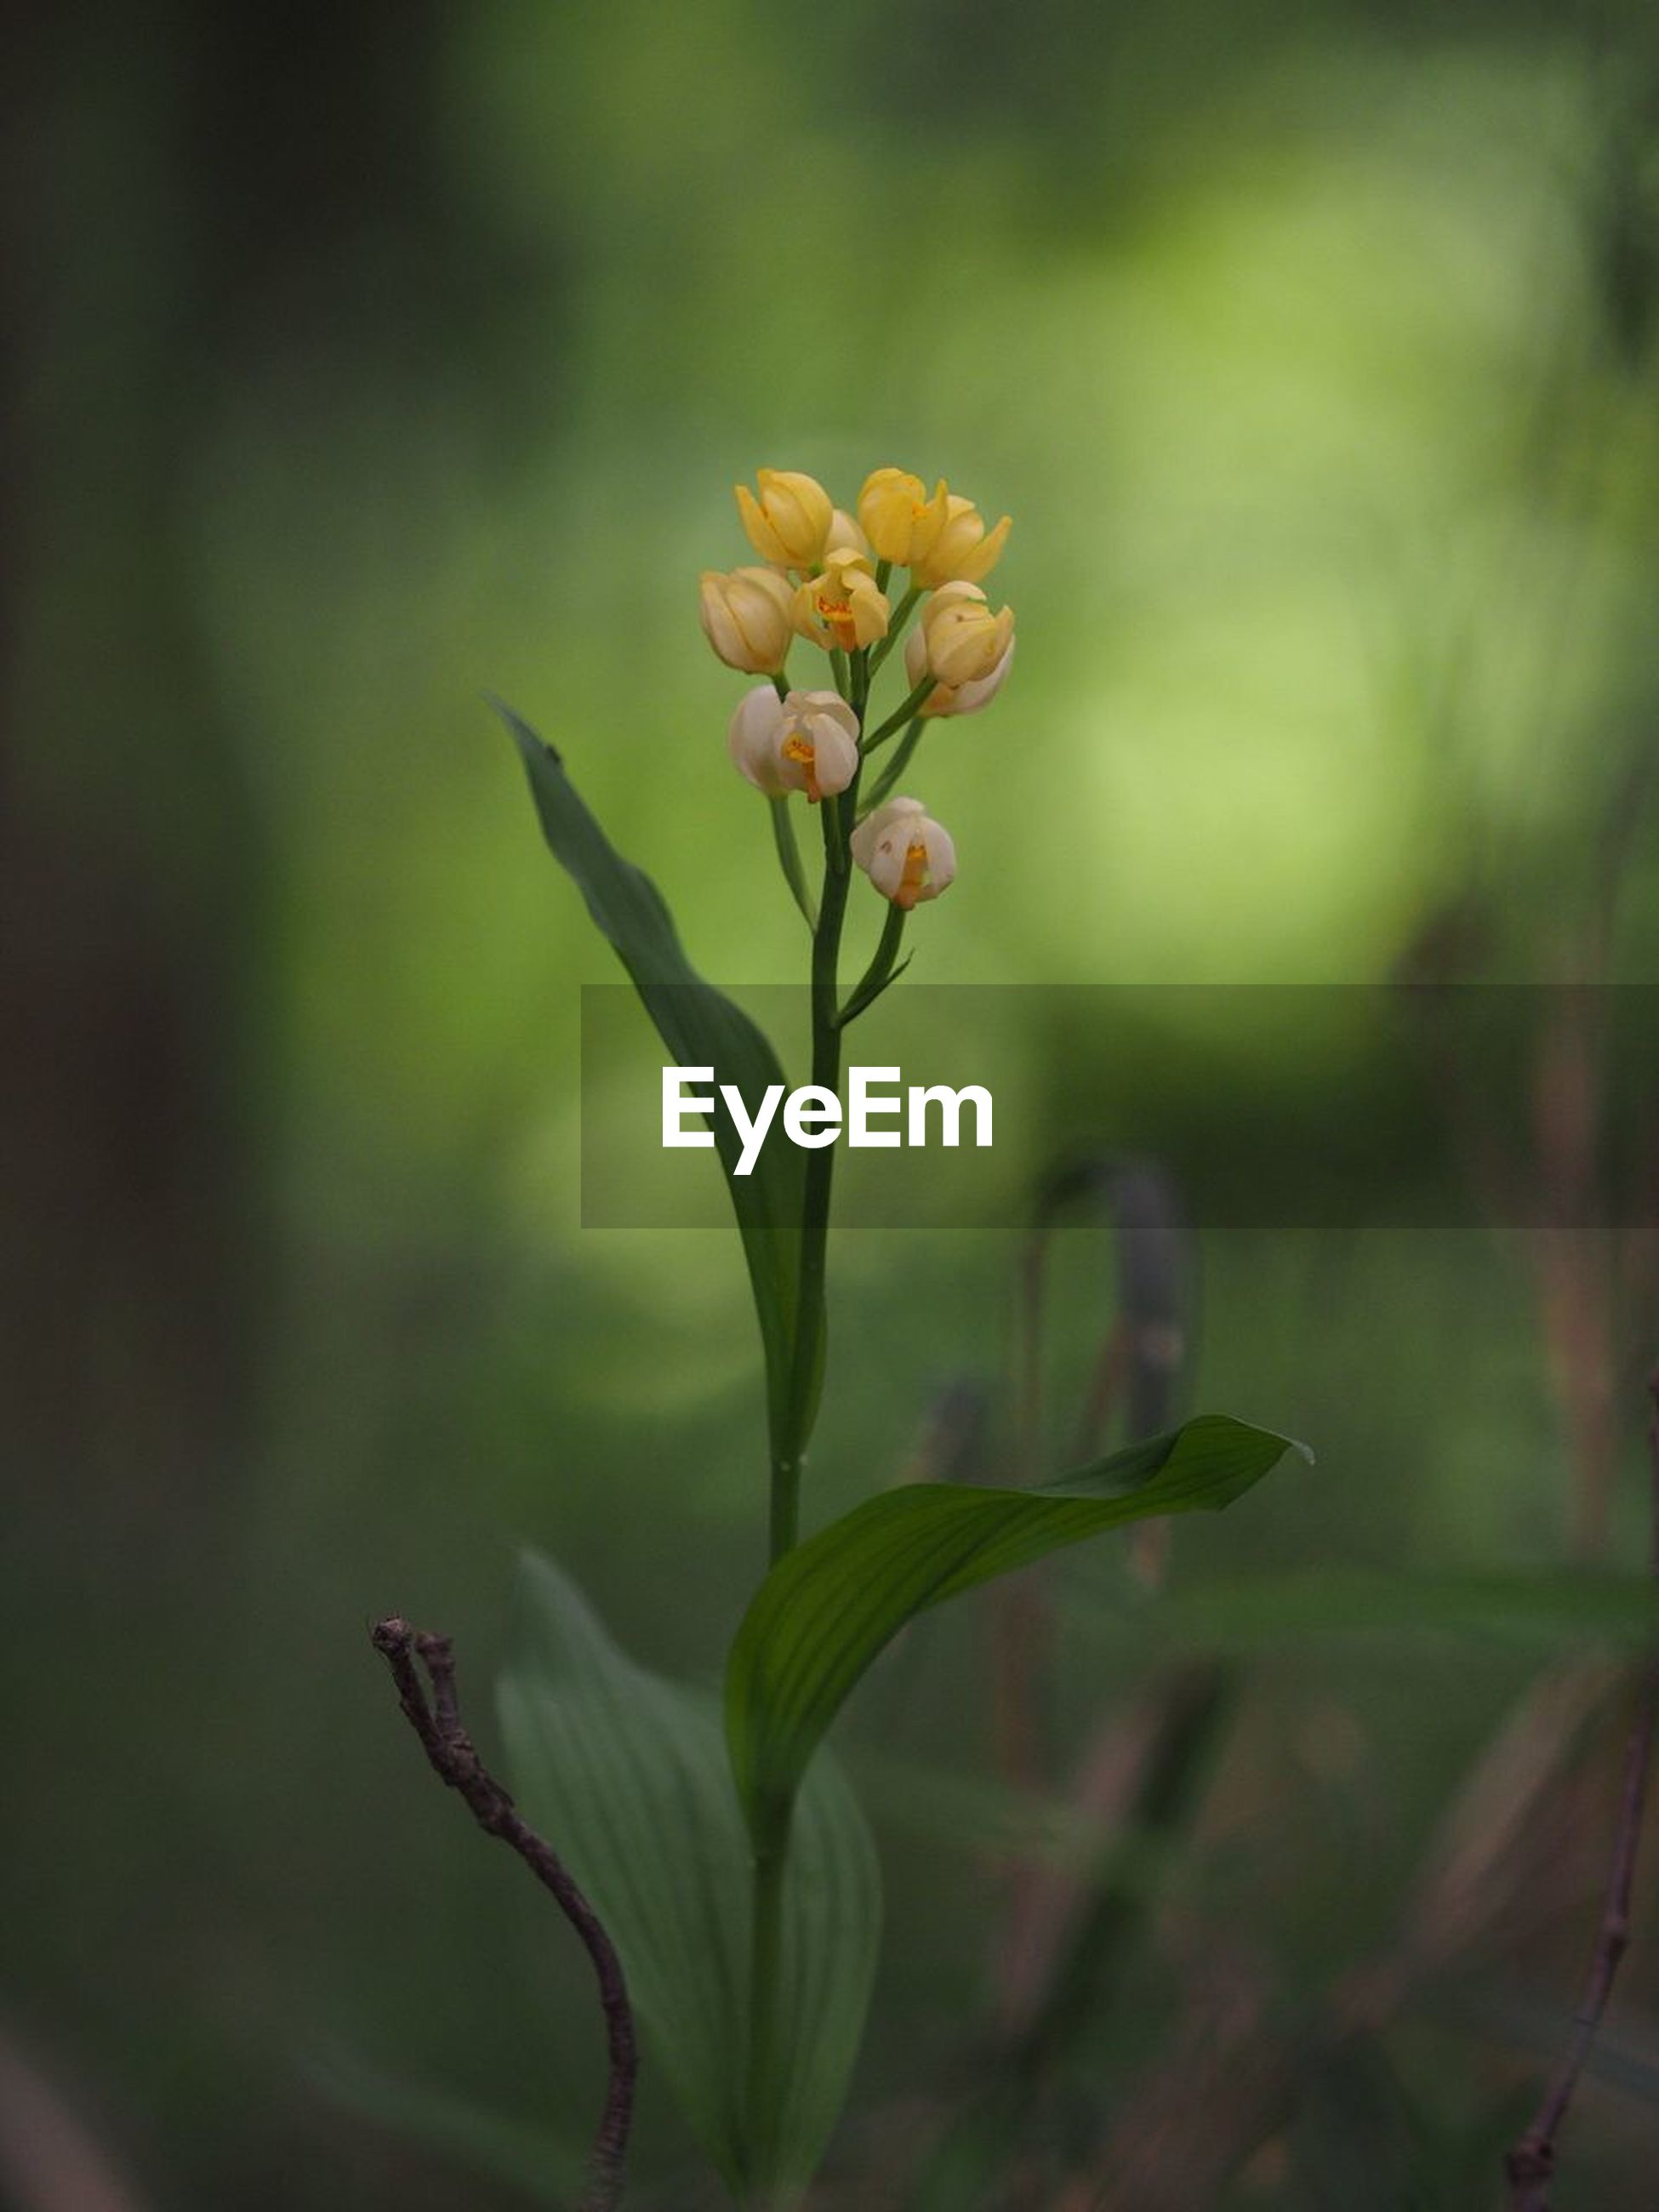 flower, growth, freshness, fragility, petal, plant, focus on foreground, stem, close-up, beauty in nature, nature, flower head, leaf, bud, blooming, selective focus, botany, new life, beginnings, in bloom